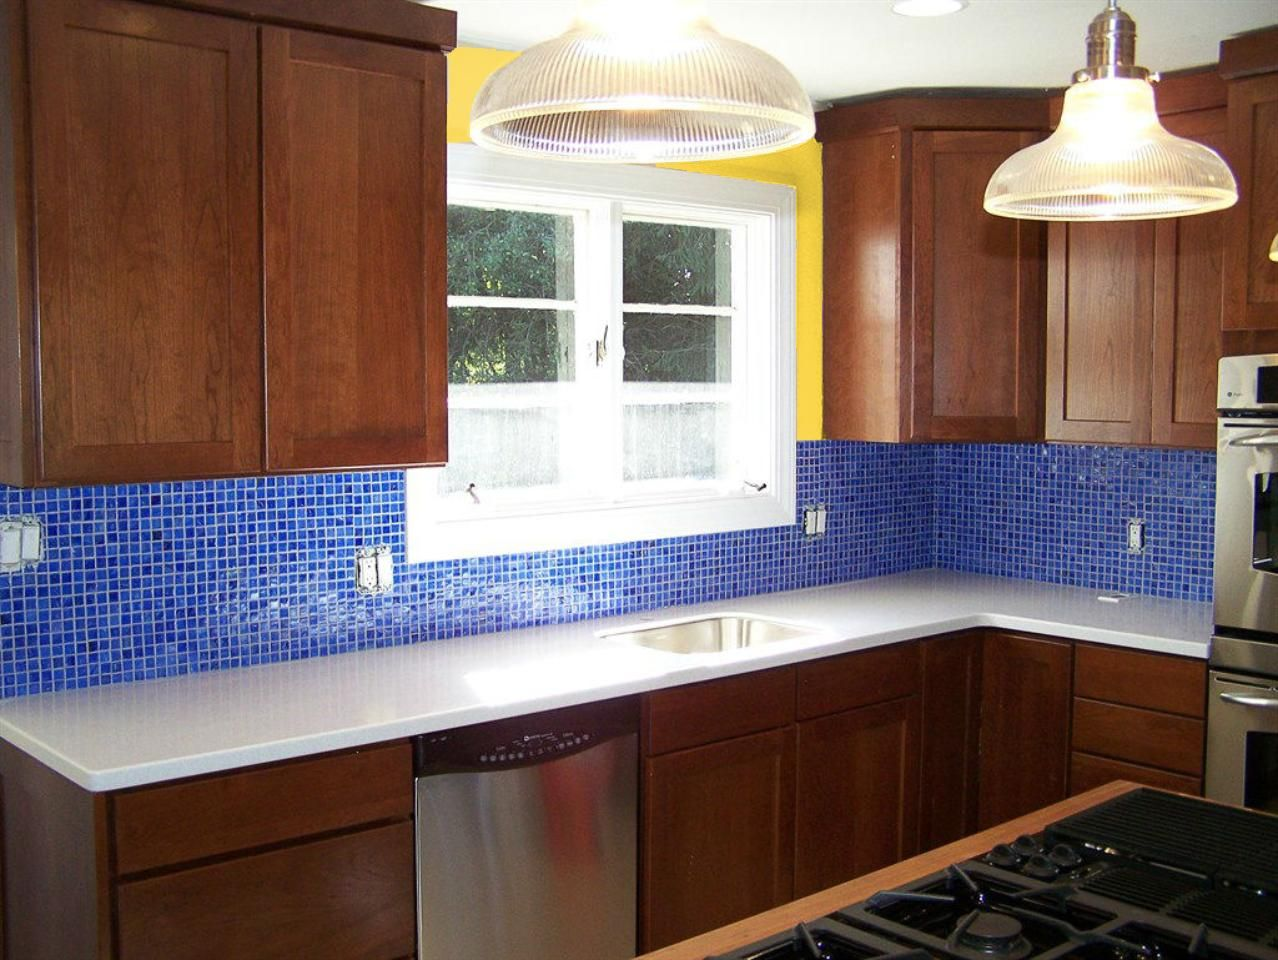 Color Scheme For The New Kitchen Dark Cabinets White Counters Cobalt Blue Mo Blue Glass Tile Kitchen Green Kitchen Backsplash Backsplash With Dark Cabinets